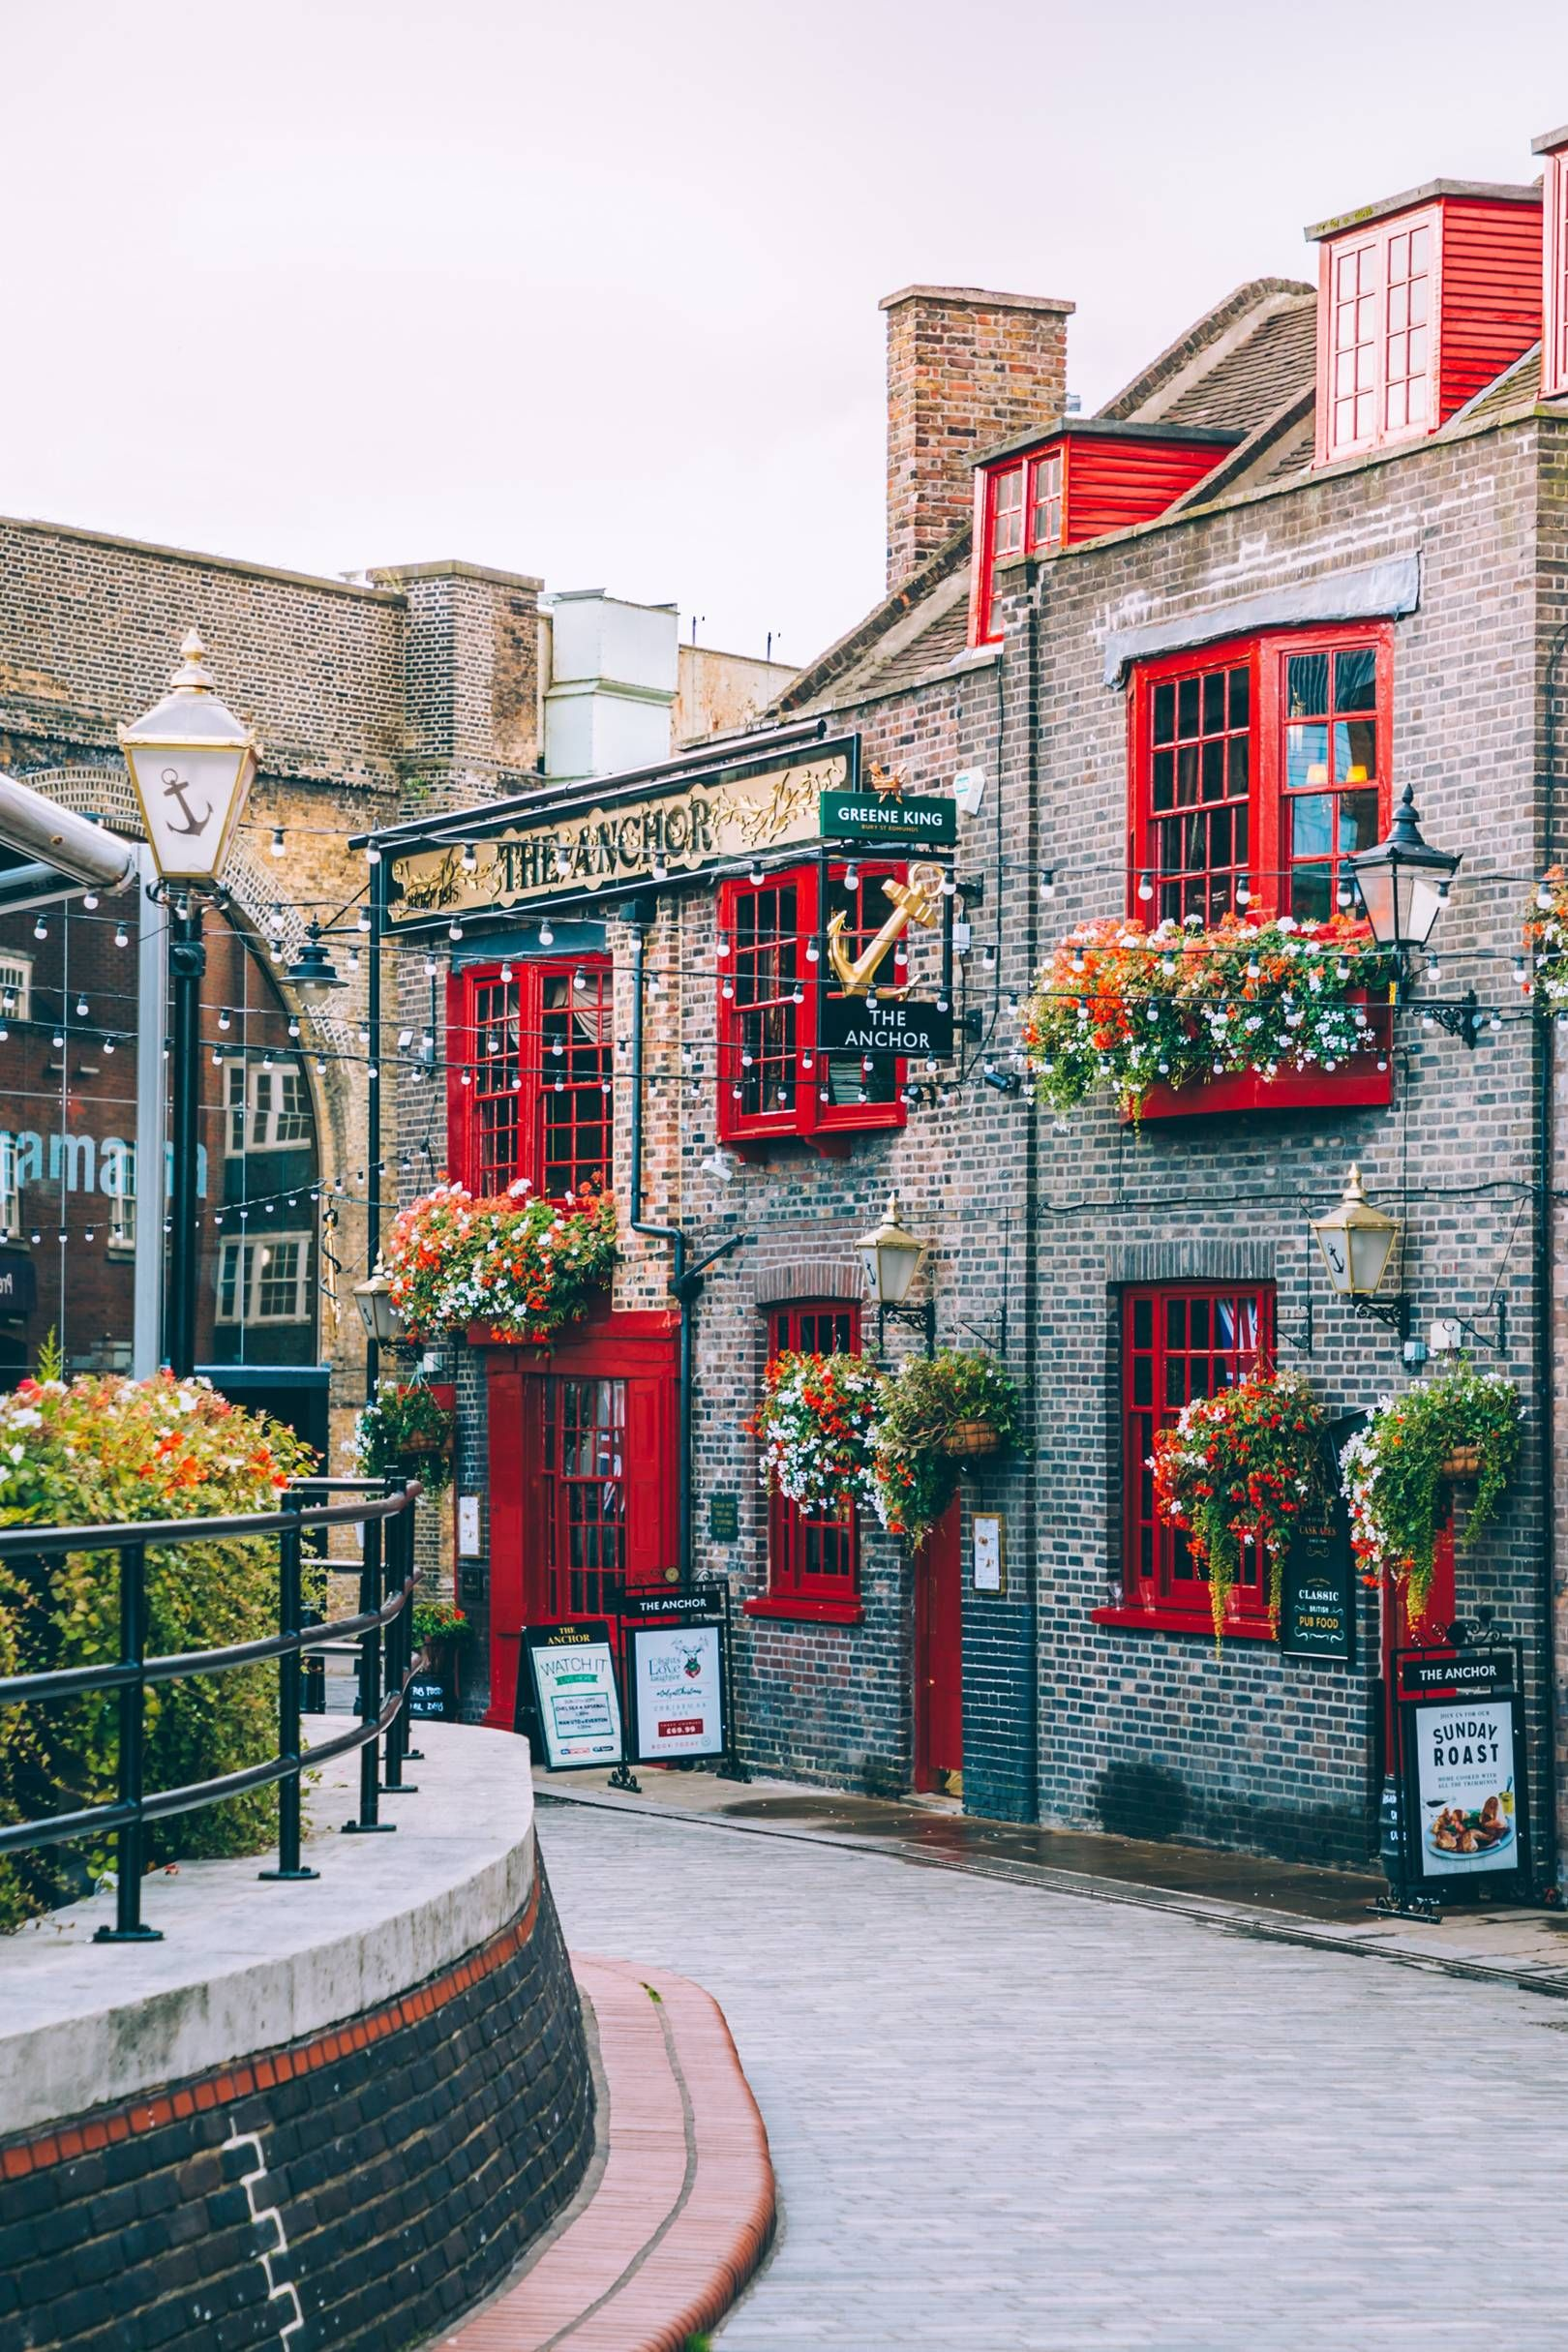 The Anchor is one of the oldest pubs in the city. It's located on Bankside, close to Southwark Cathedral, so you can find it while walking along the banks of the Thames. This 800-year-old tavern was destroyed during the Great Fire of London in 1666 but was rebuilt soon after. [i]The Anchor, 34 Park Street, London SE1 9EF[/i]